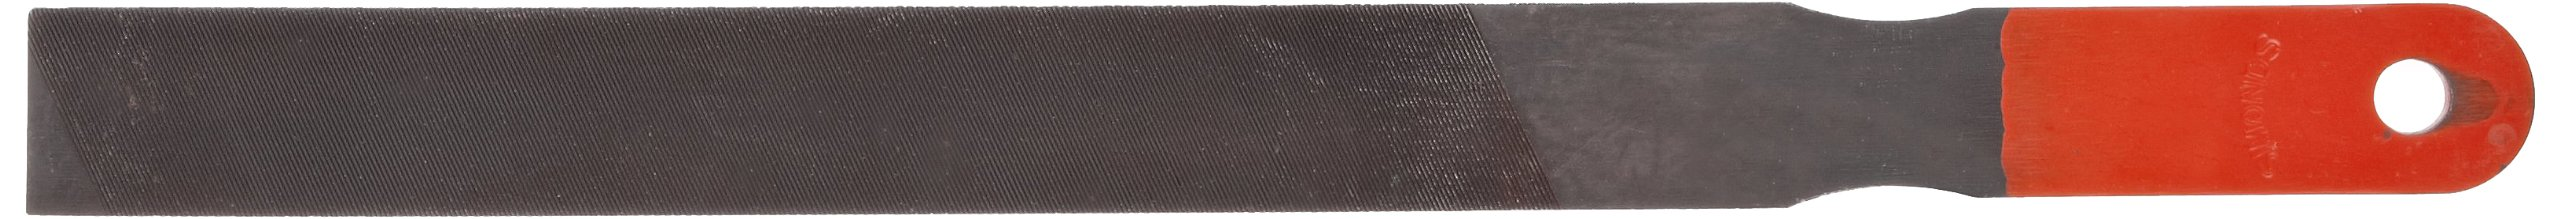 Simonds Hand File, American Pattern, Single/Double Cut, Rectangular, Black Oxide Coating, Coarse, 10'' Length, 31/32'' Width, 3/16'' Thickness